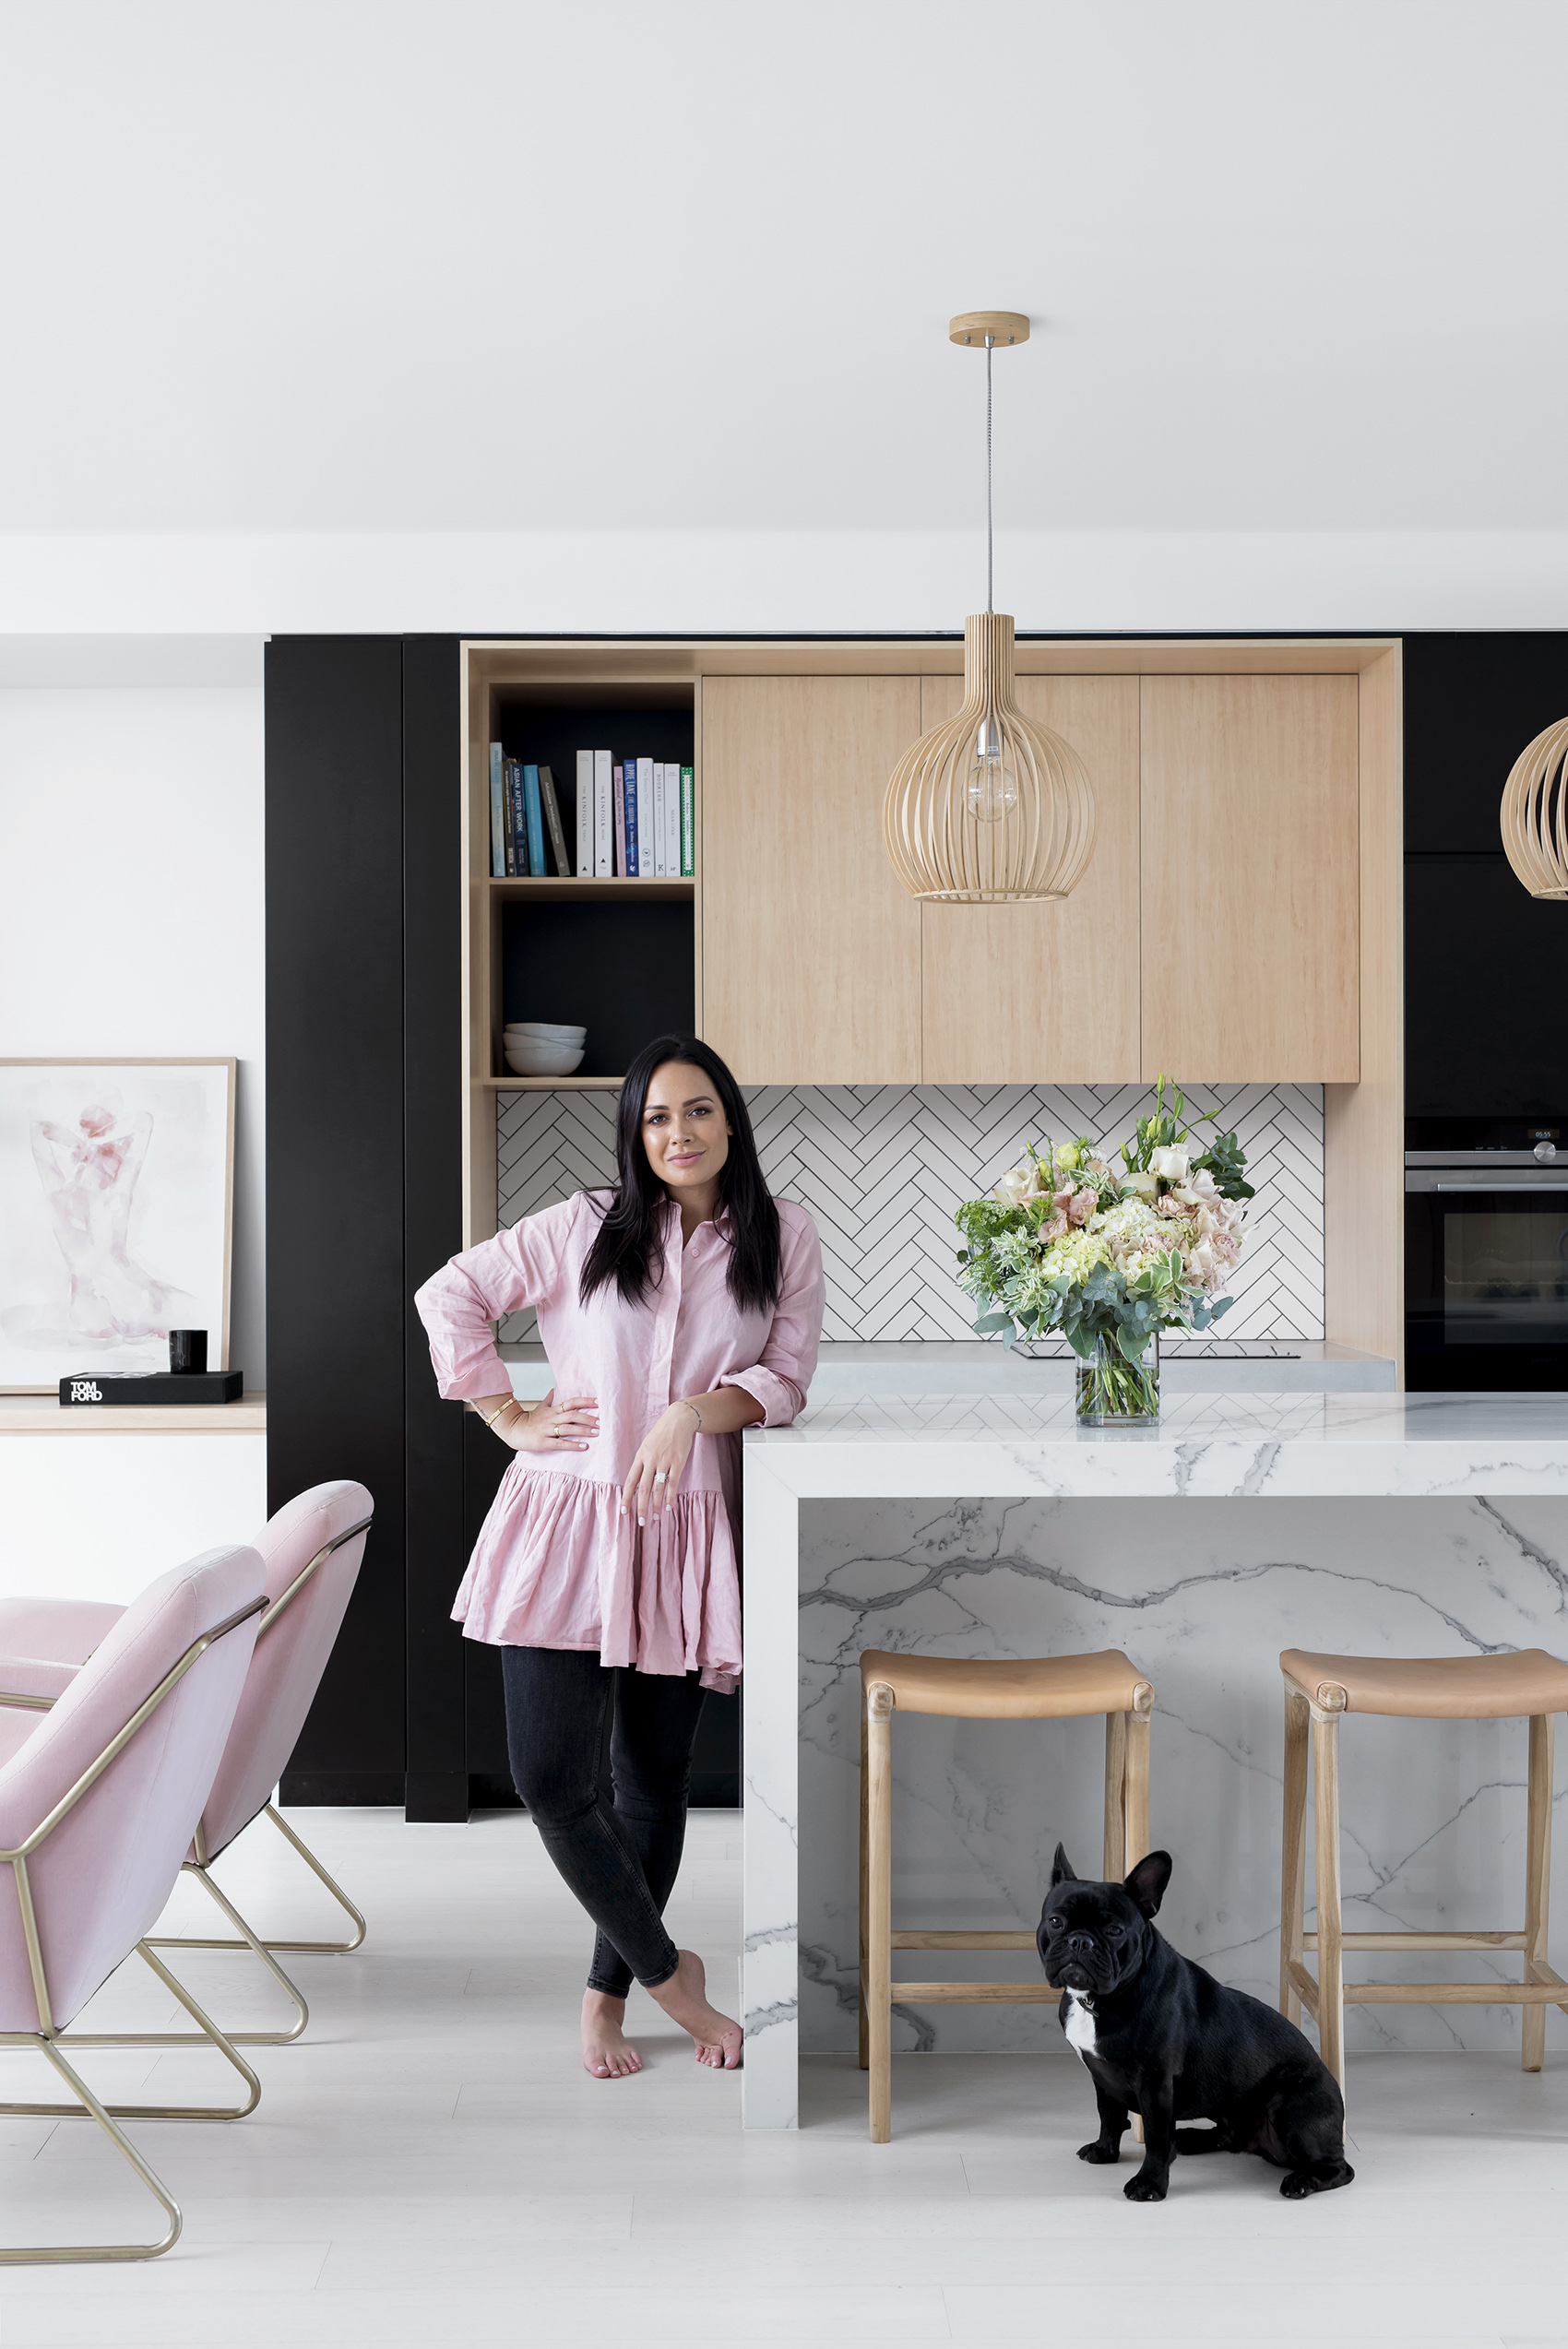 """HUB OF THE HOME - """"The kitchen is the hub of our home – it's where we do a lot of entertaining. It's functional and very practical for a family. It has everything you need without being overdone,"""" remarks Kayla. Stools from MRD Home; pendant lights from Beacon; flowers from White Havana."""